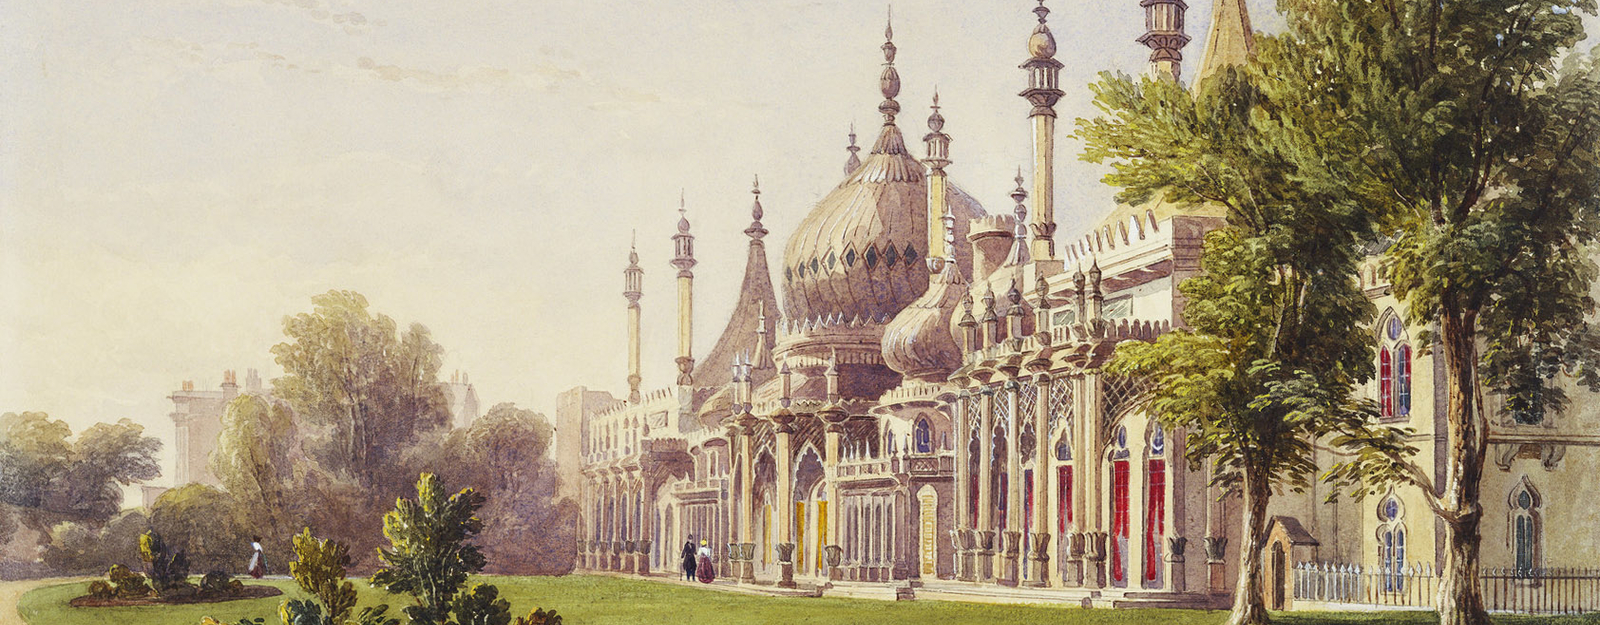 the royal pavilion essay John nash finished his expansion of the royal pavilion in brighton in 1822 a few years later, boulogne, on the other side of the channel, became an early beach resort: 'you will find whatever you are looking for there,' manet wrote to a friend.